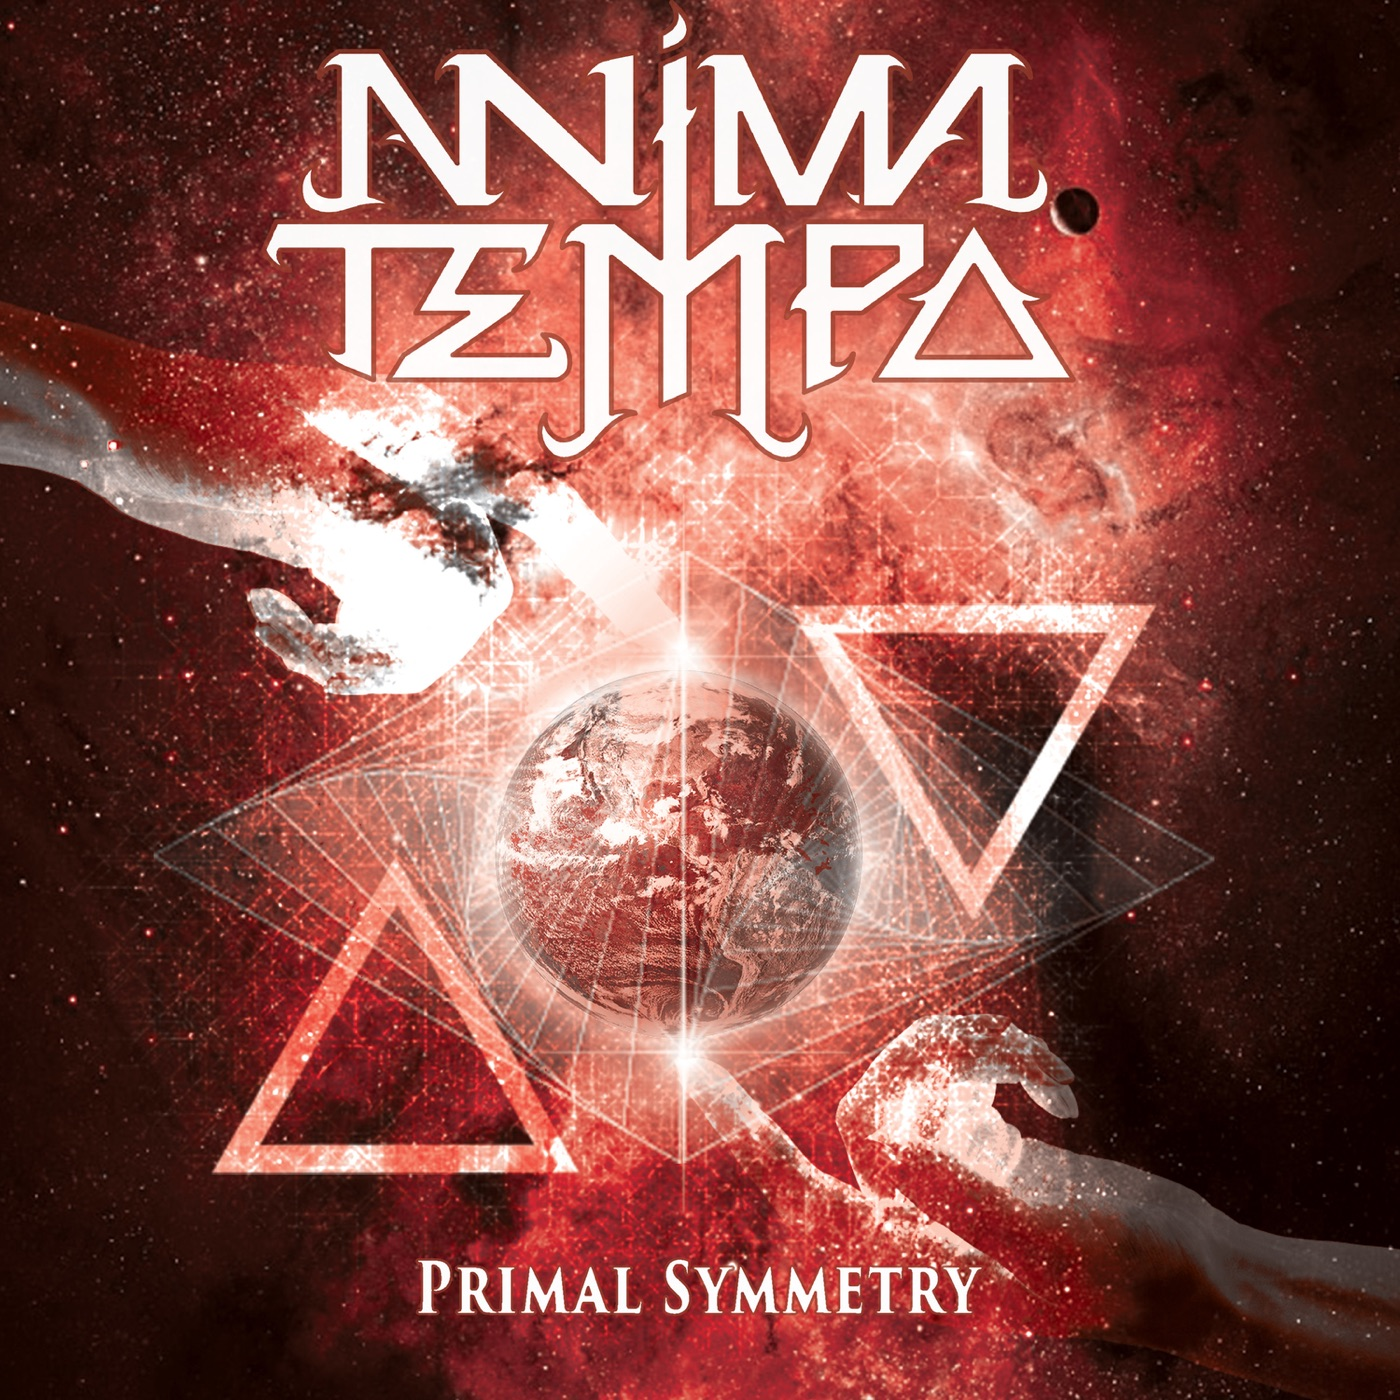 Anima Tempo - Primal Symmetry [Single] (2018)